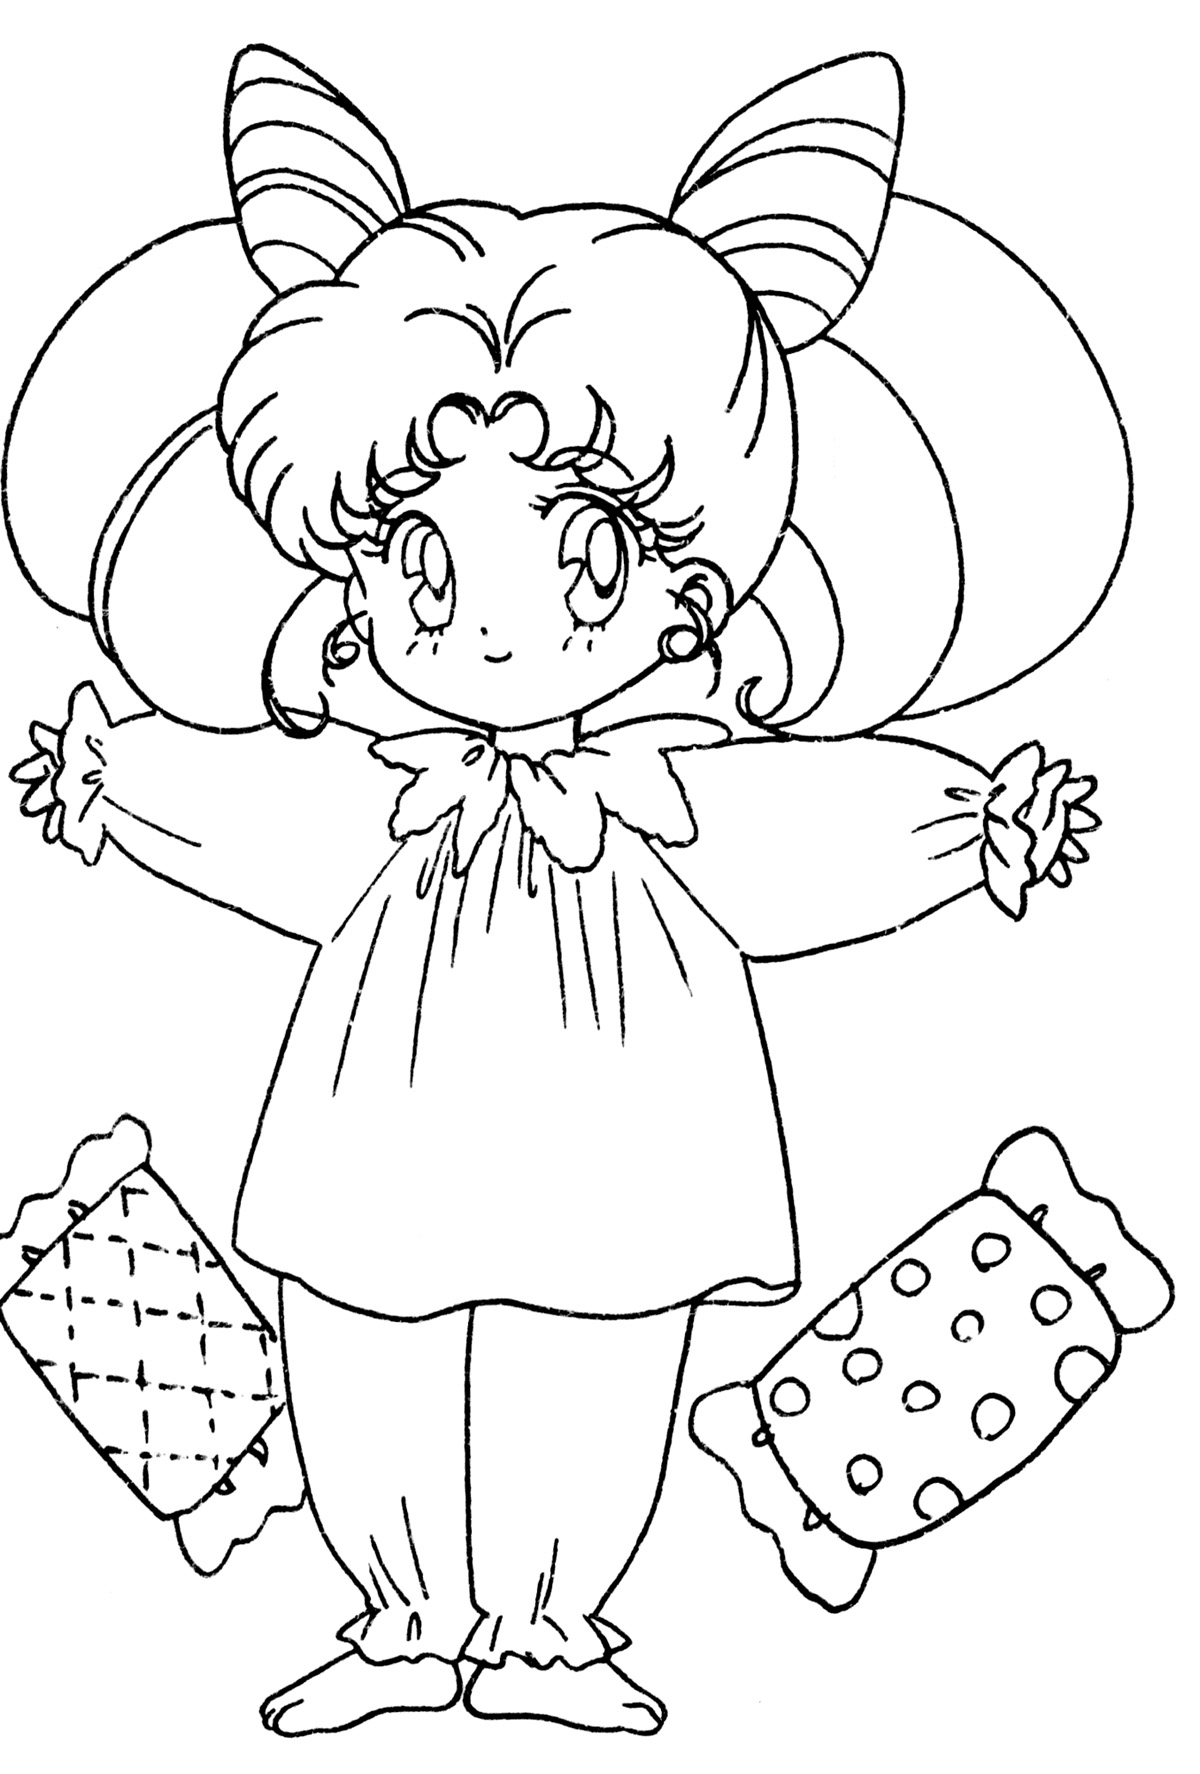 chibi moon coloring pages - photo#29